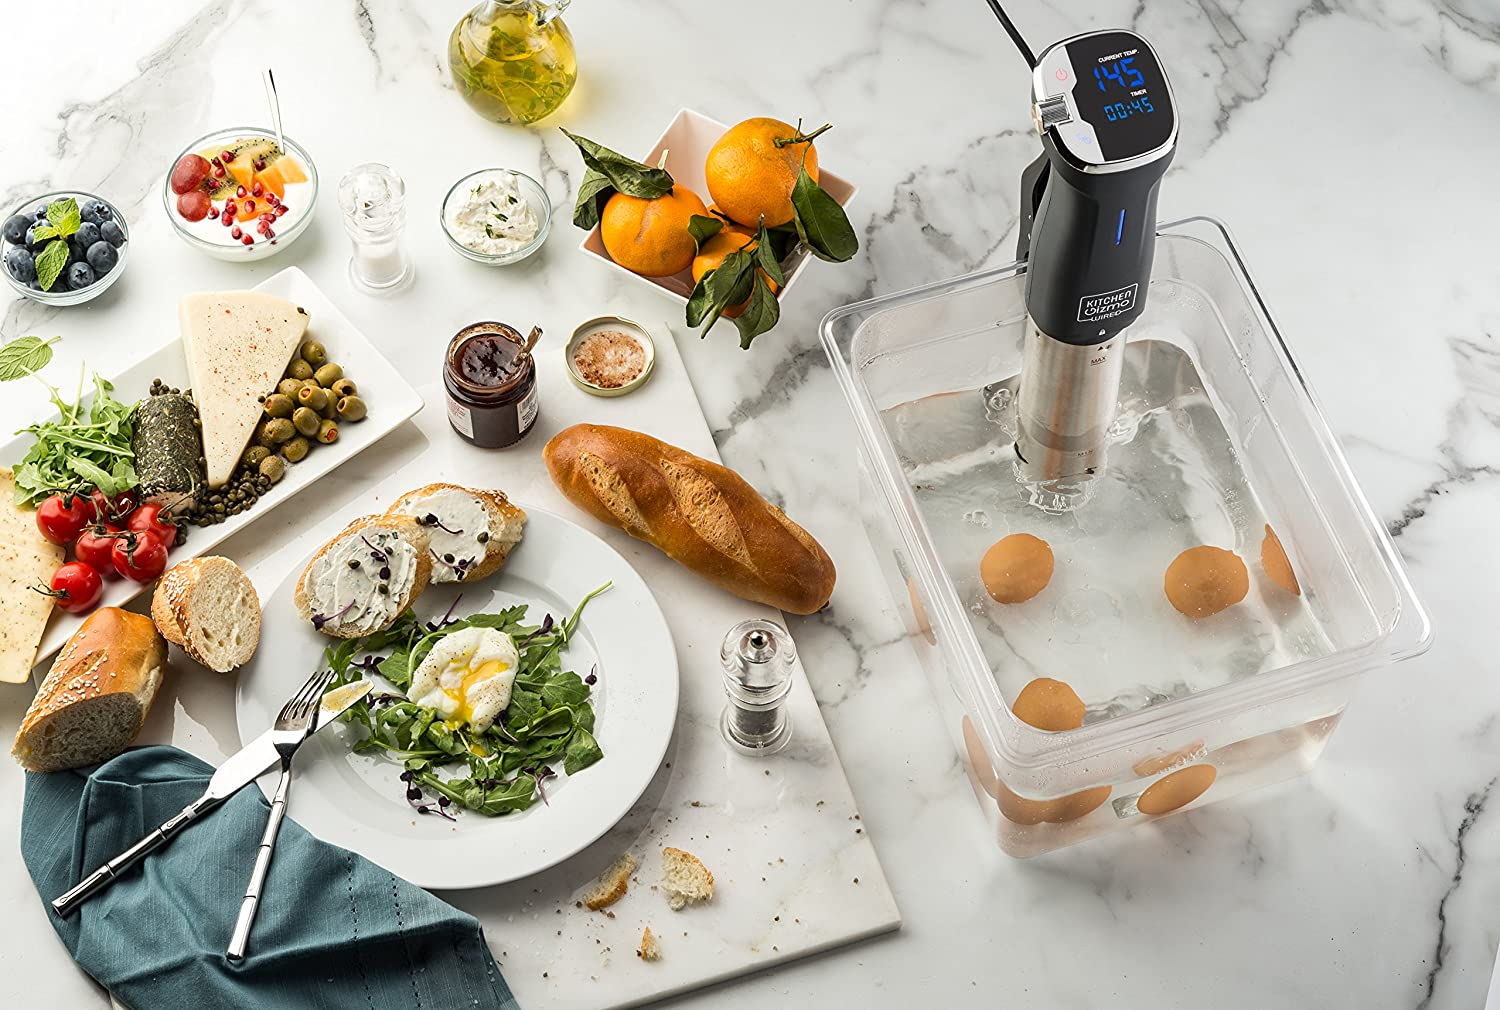 Users can easily use Kitchen Gizmo Sous Vide Immersion Circulator with just a few simple steps